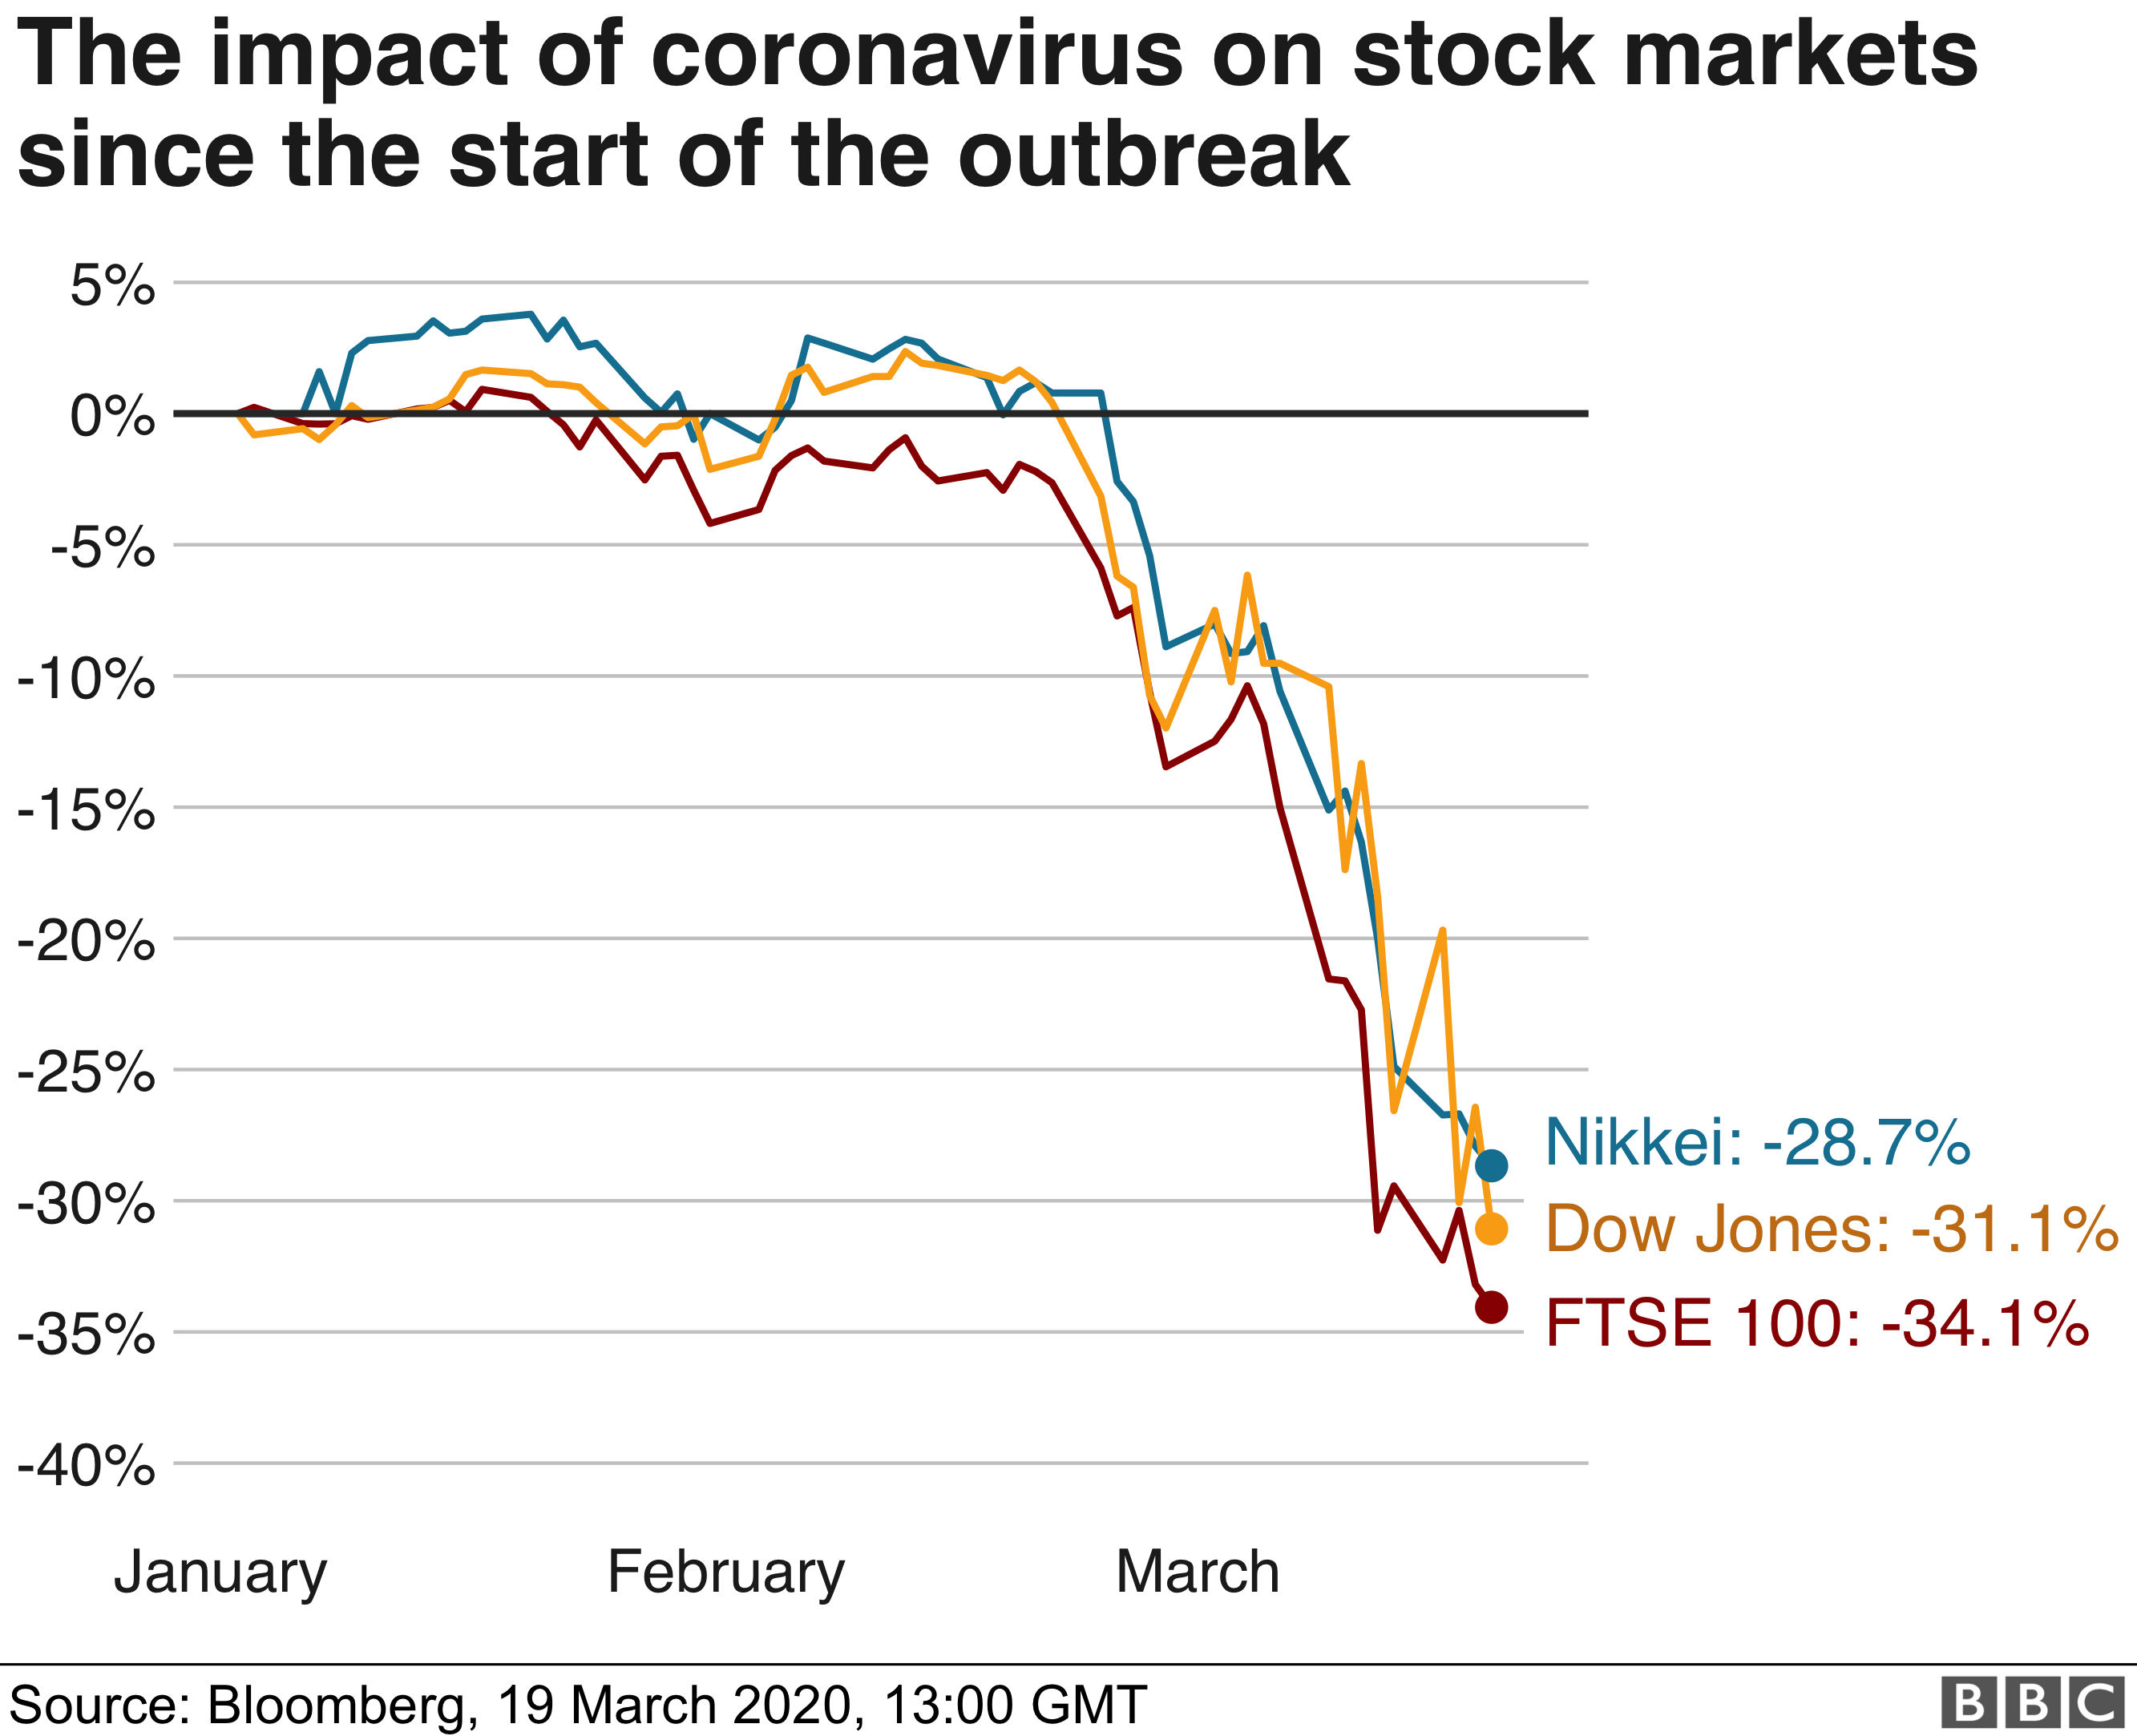 Chart showing Stock Market trends since the COVID-19 outbreak - 19 March